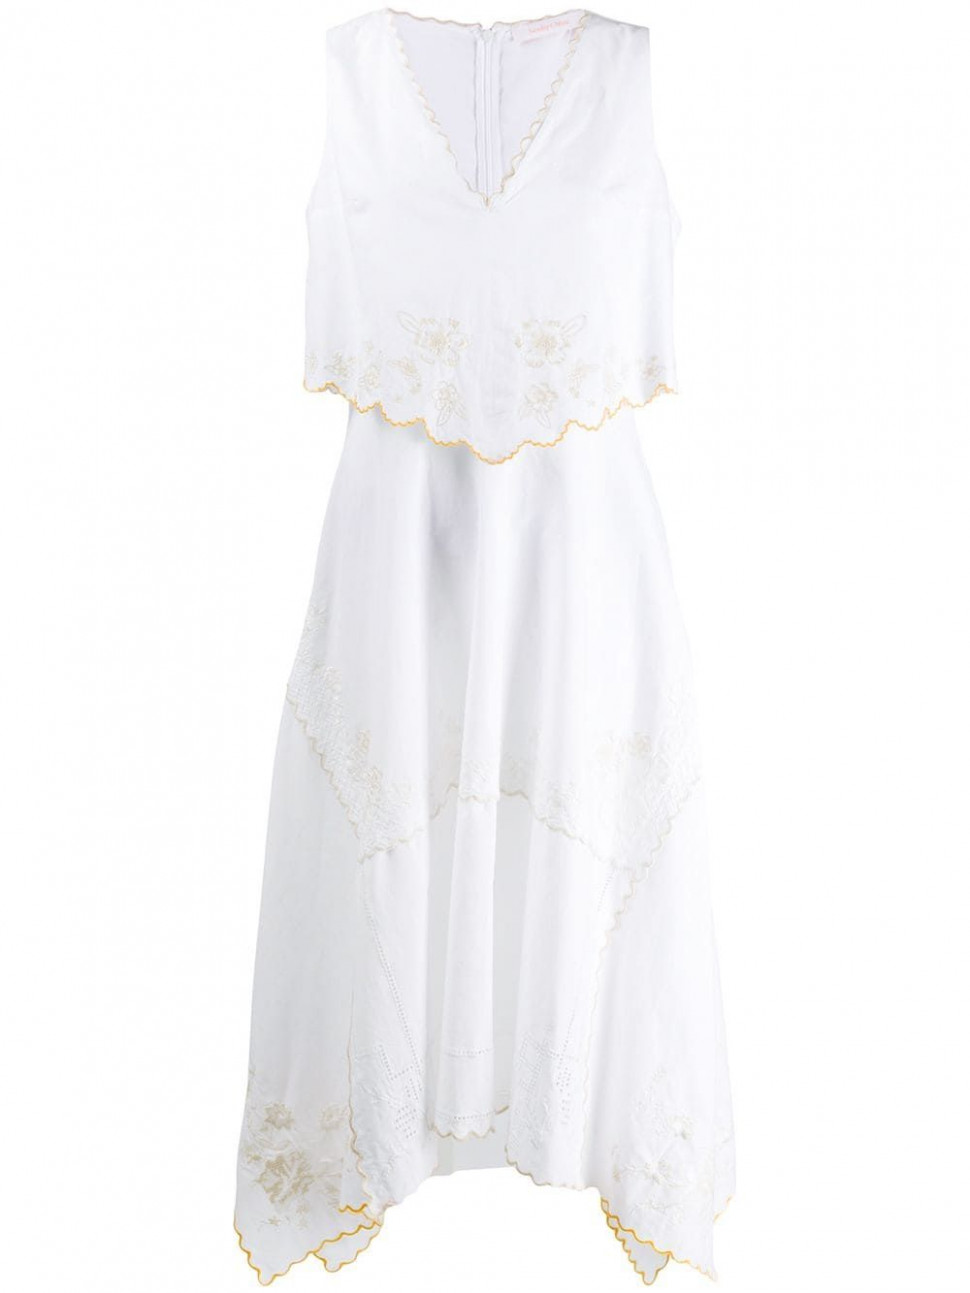 see by chloé embroidered dress farfetch embroidered dress see by chloe kleid